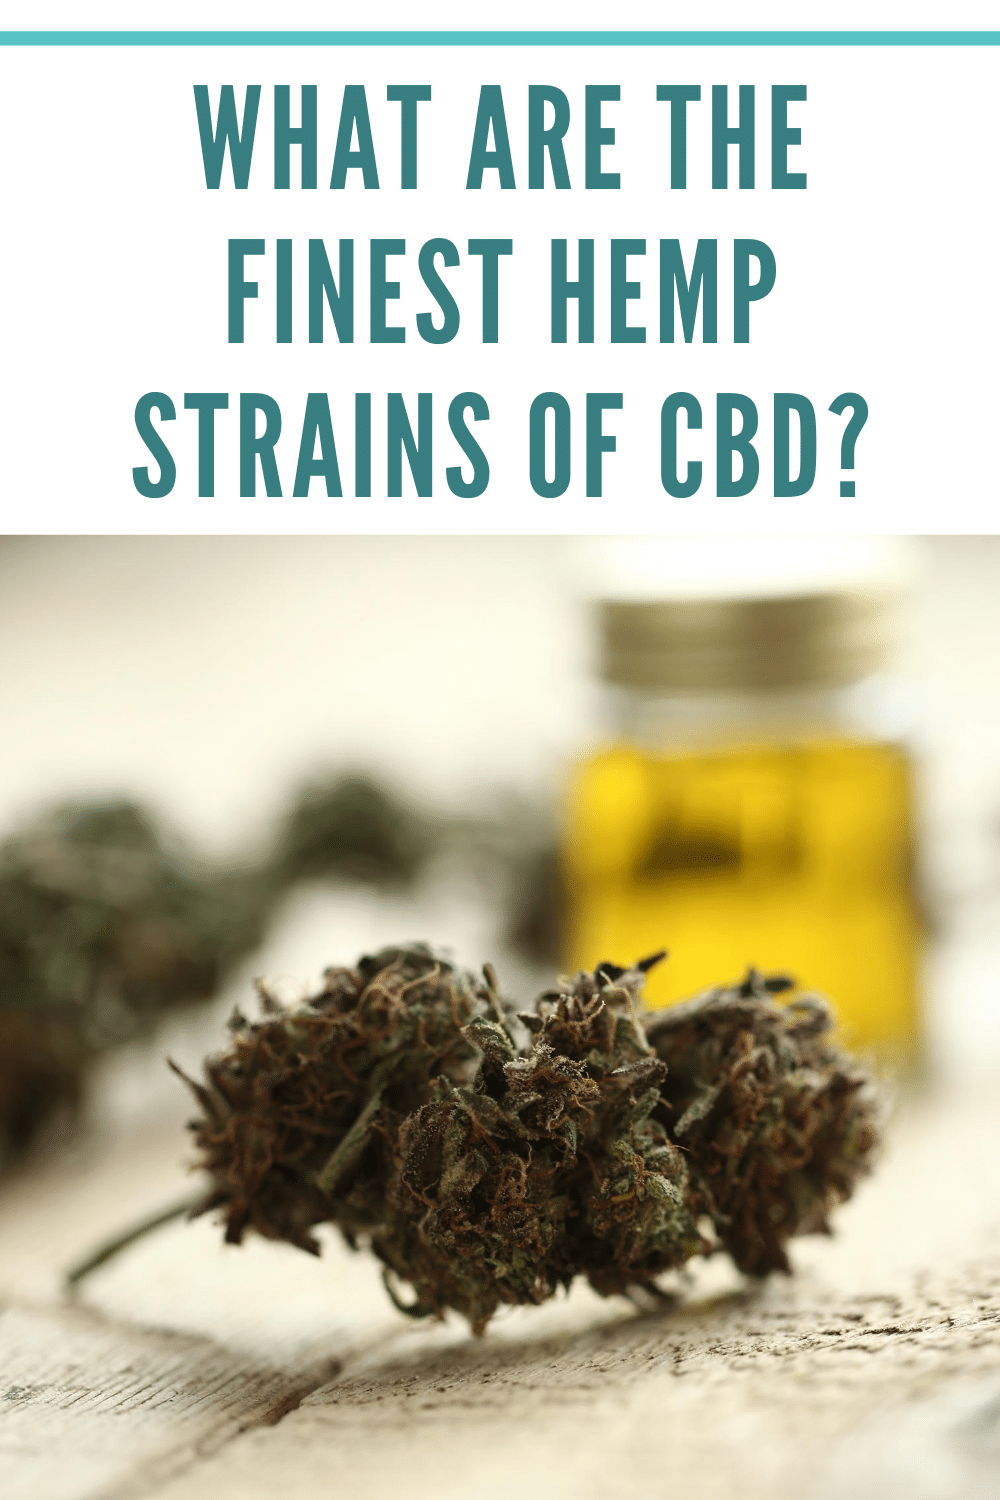 What Are The Finest Hemp Strains Of CBD?